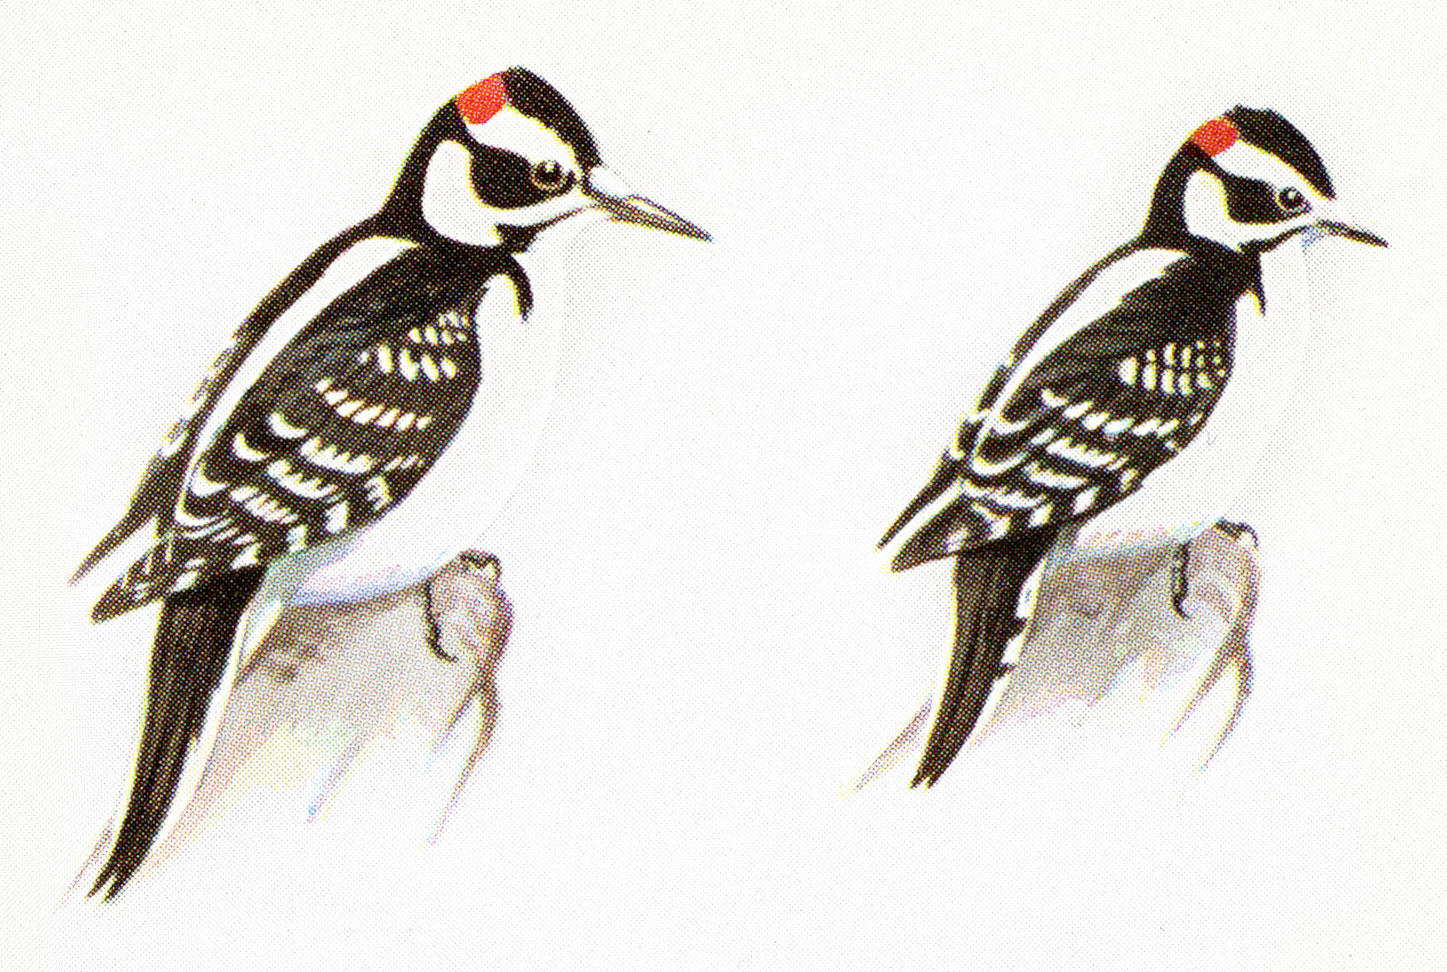 Downy woodpecker. How to tell a